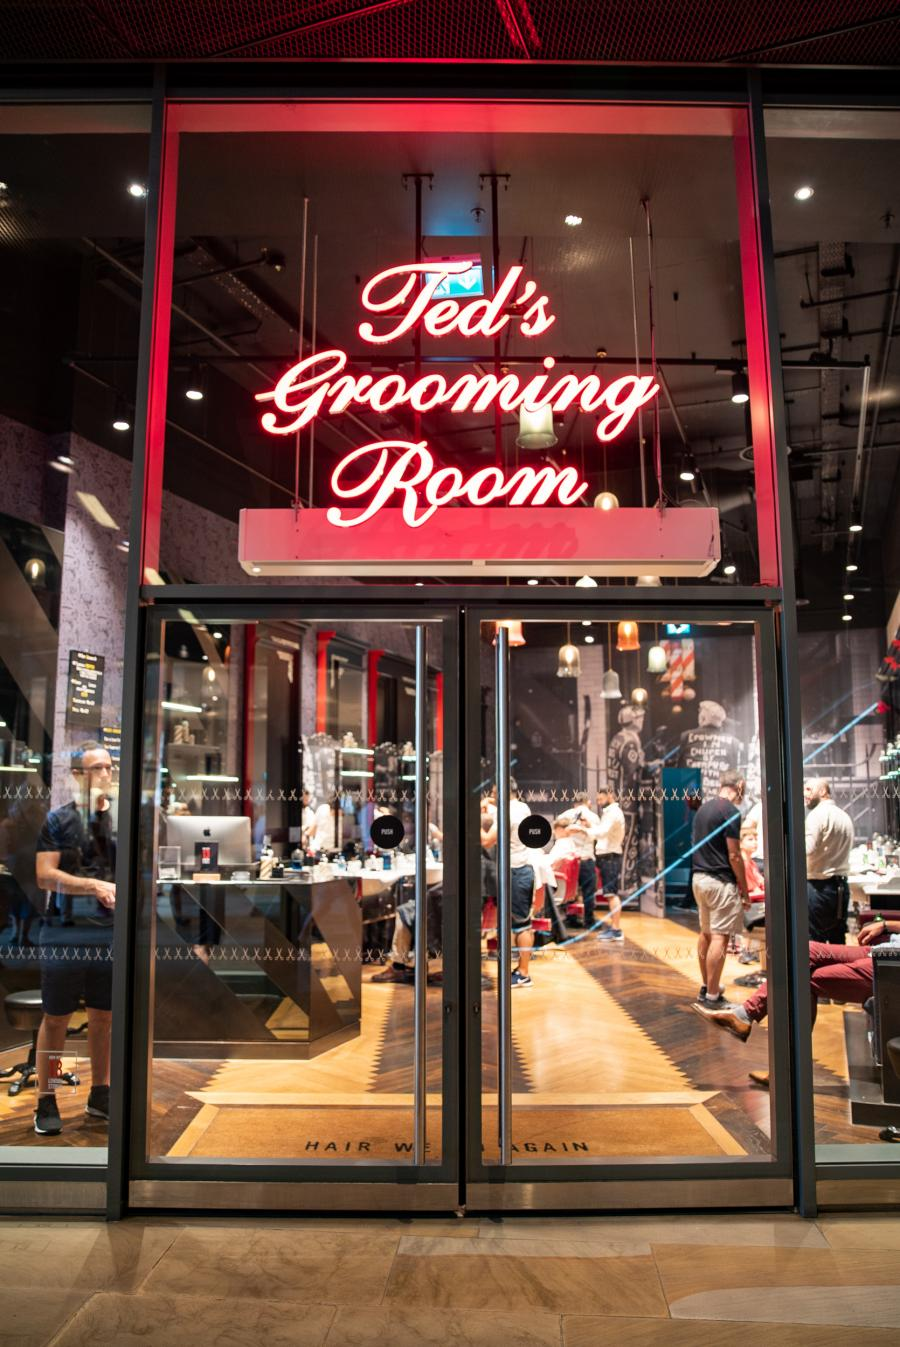 Ted's Grooming Room at One New Change